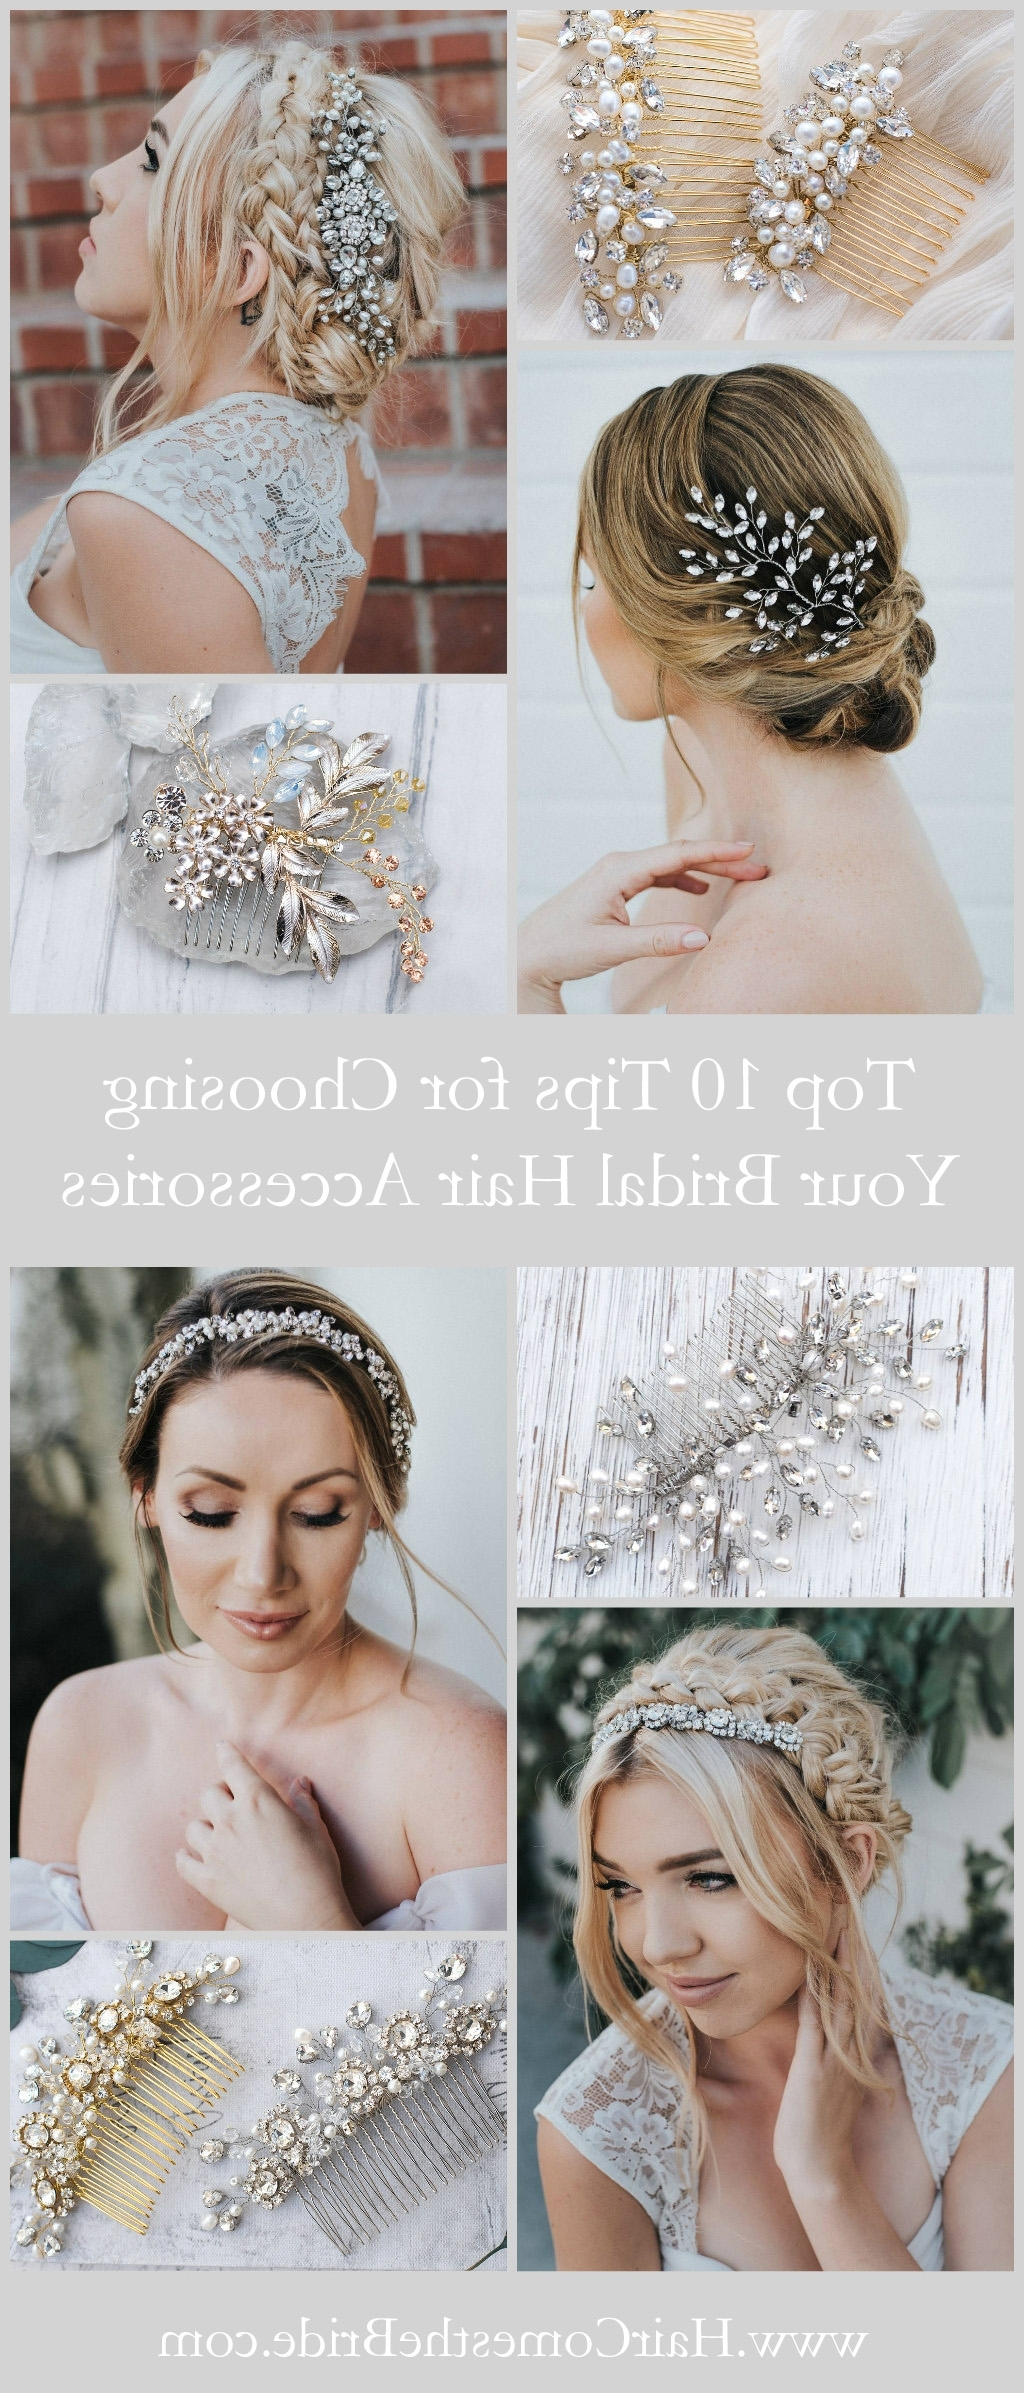 Current Wedding Hairstyles With Headband And Veil In Top 10 Tips For Choosing Your Bridal Hair Accessories – Hair Comes (View 5 of 15)